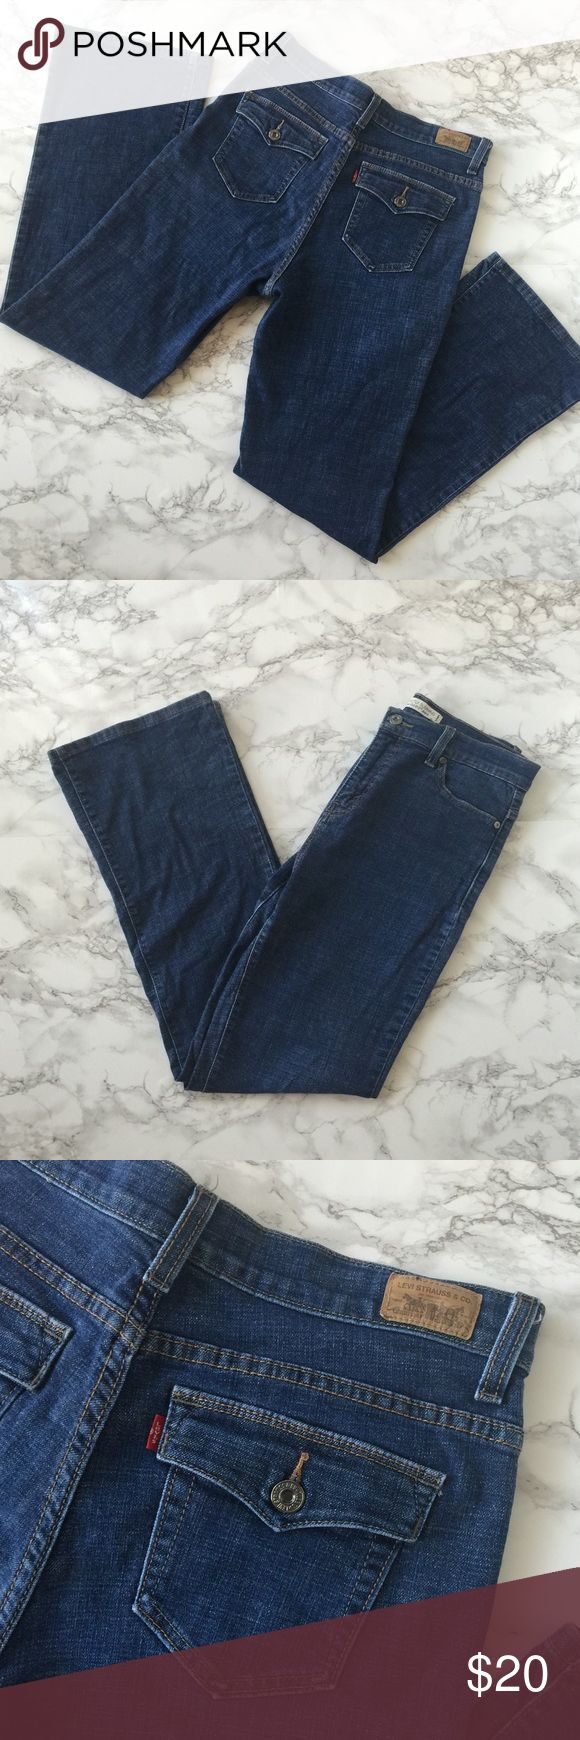 Levis 512 Boot Cut Jeans Levis perfectly slimming 512 jeans in excellent condition. Size 10m, mid rise pants sits at waist. Levi's Jeans Boot Cut